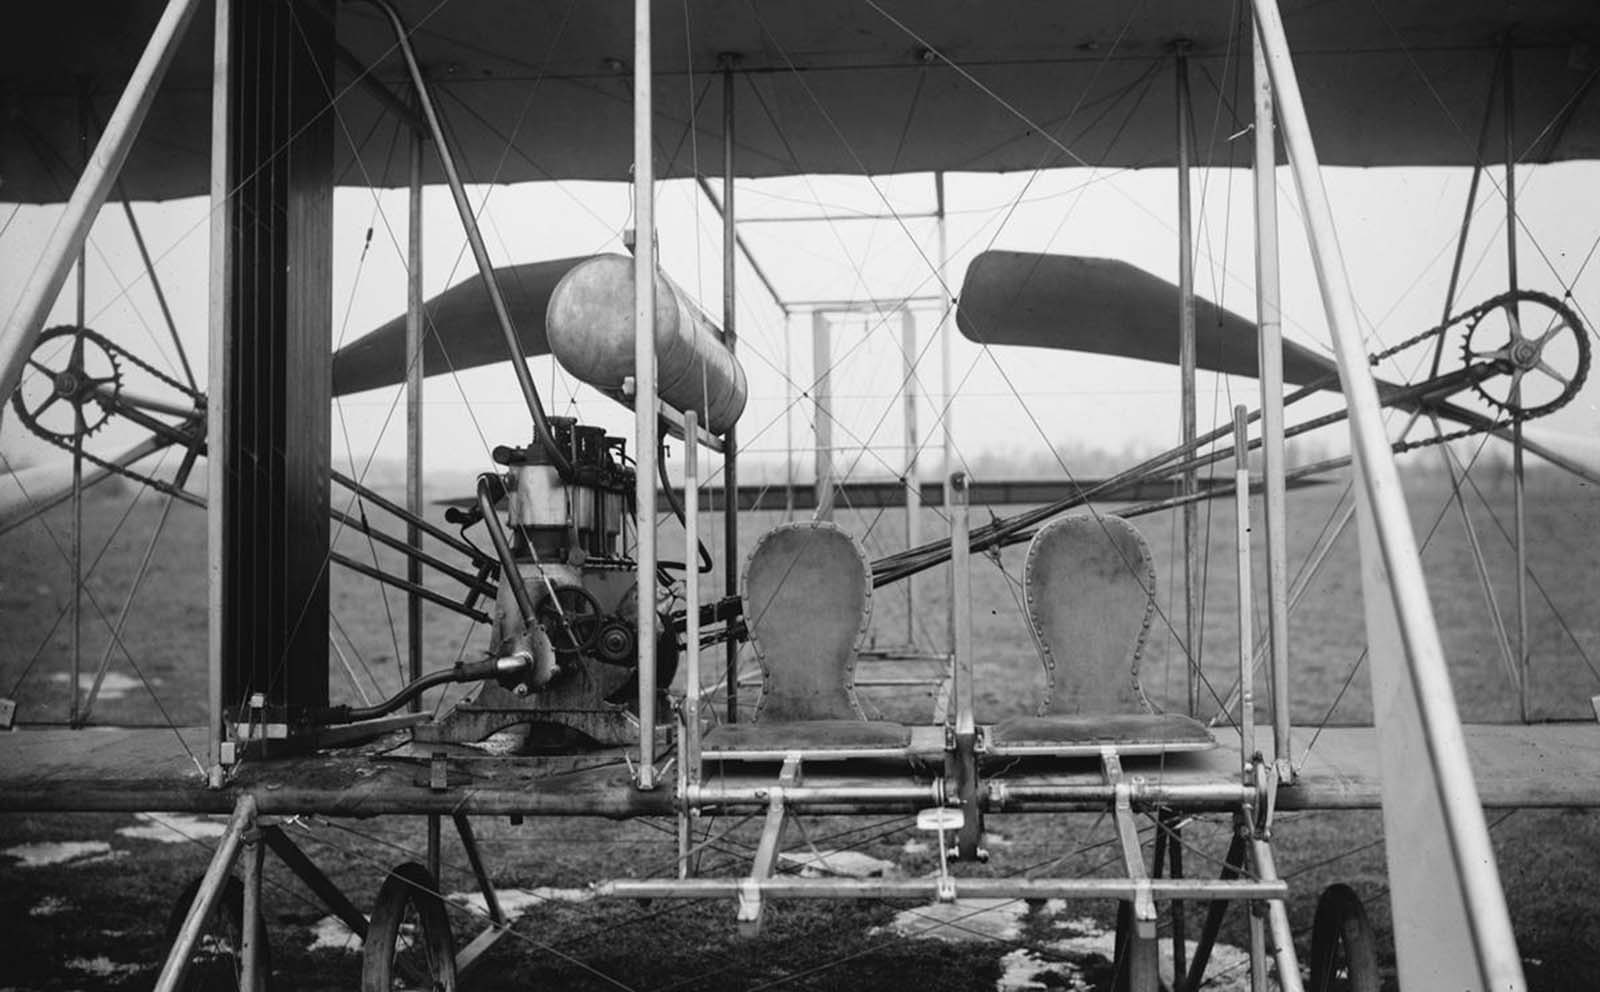 Close-up view of a Wright airplane, including the pilot and passenger seats, 1911.